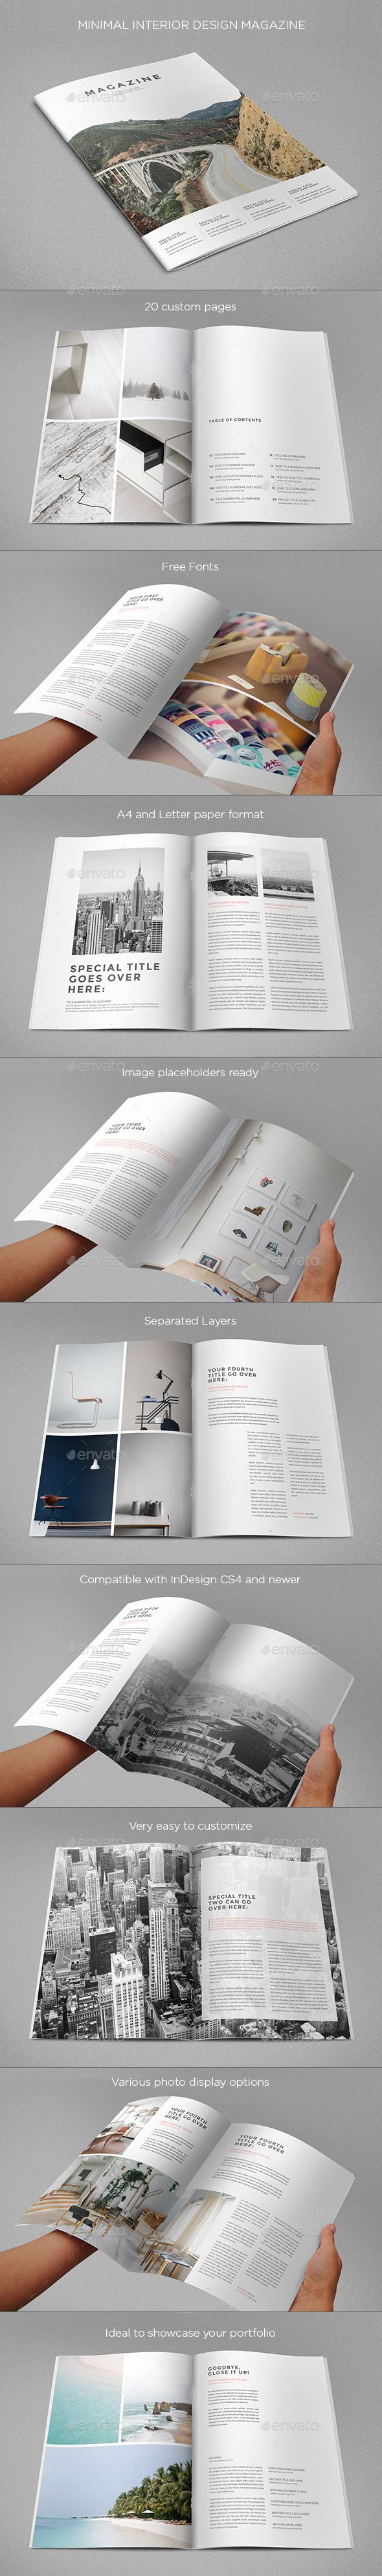 Minimal Interior Design Magazine by AbraDesign MINIMAL INTERIOR DESIGN MAGAZINEClean, modern and simple design ideal for any purposes. Very easy to adapt and customize. DETAILS